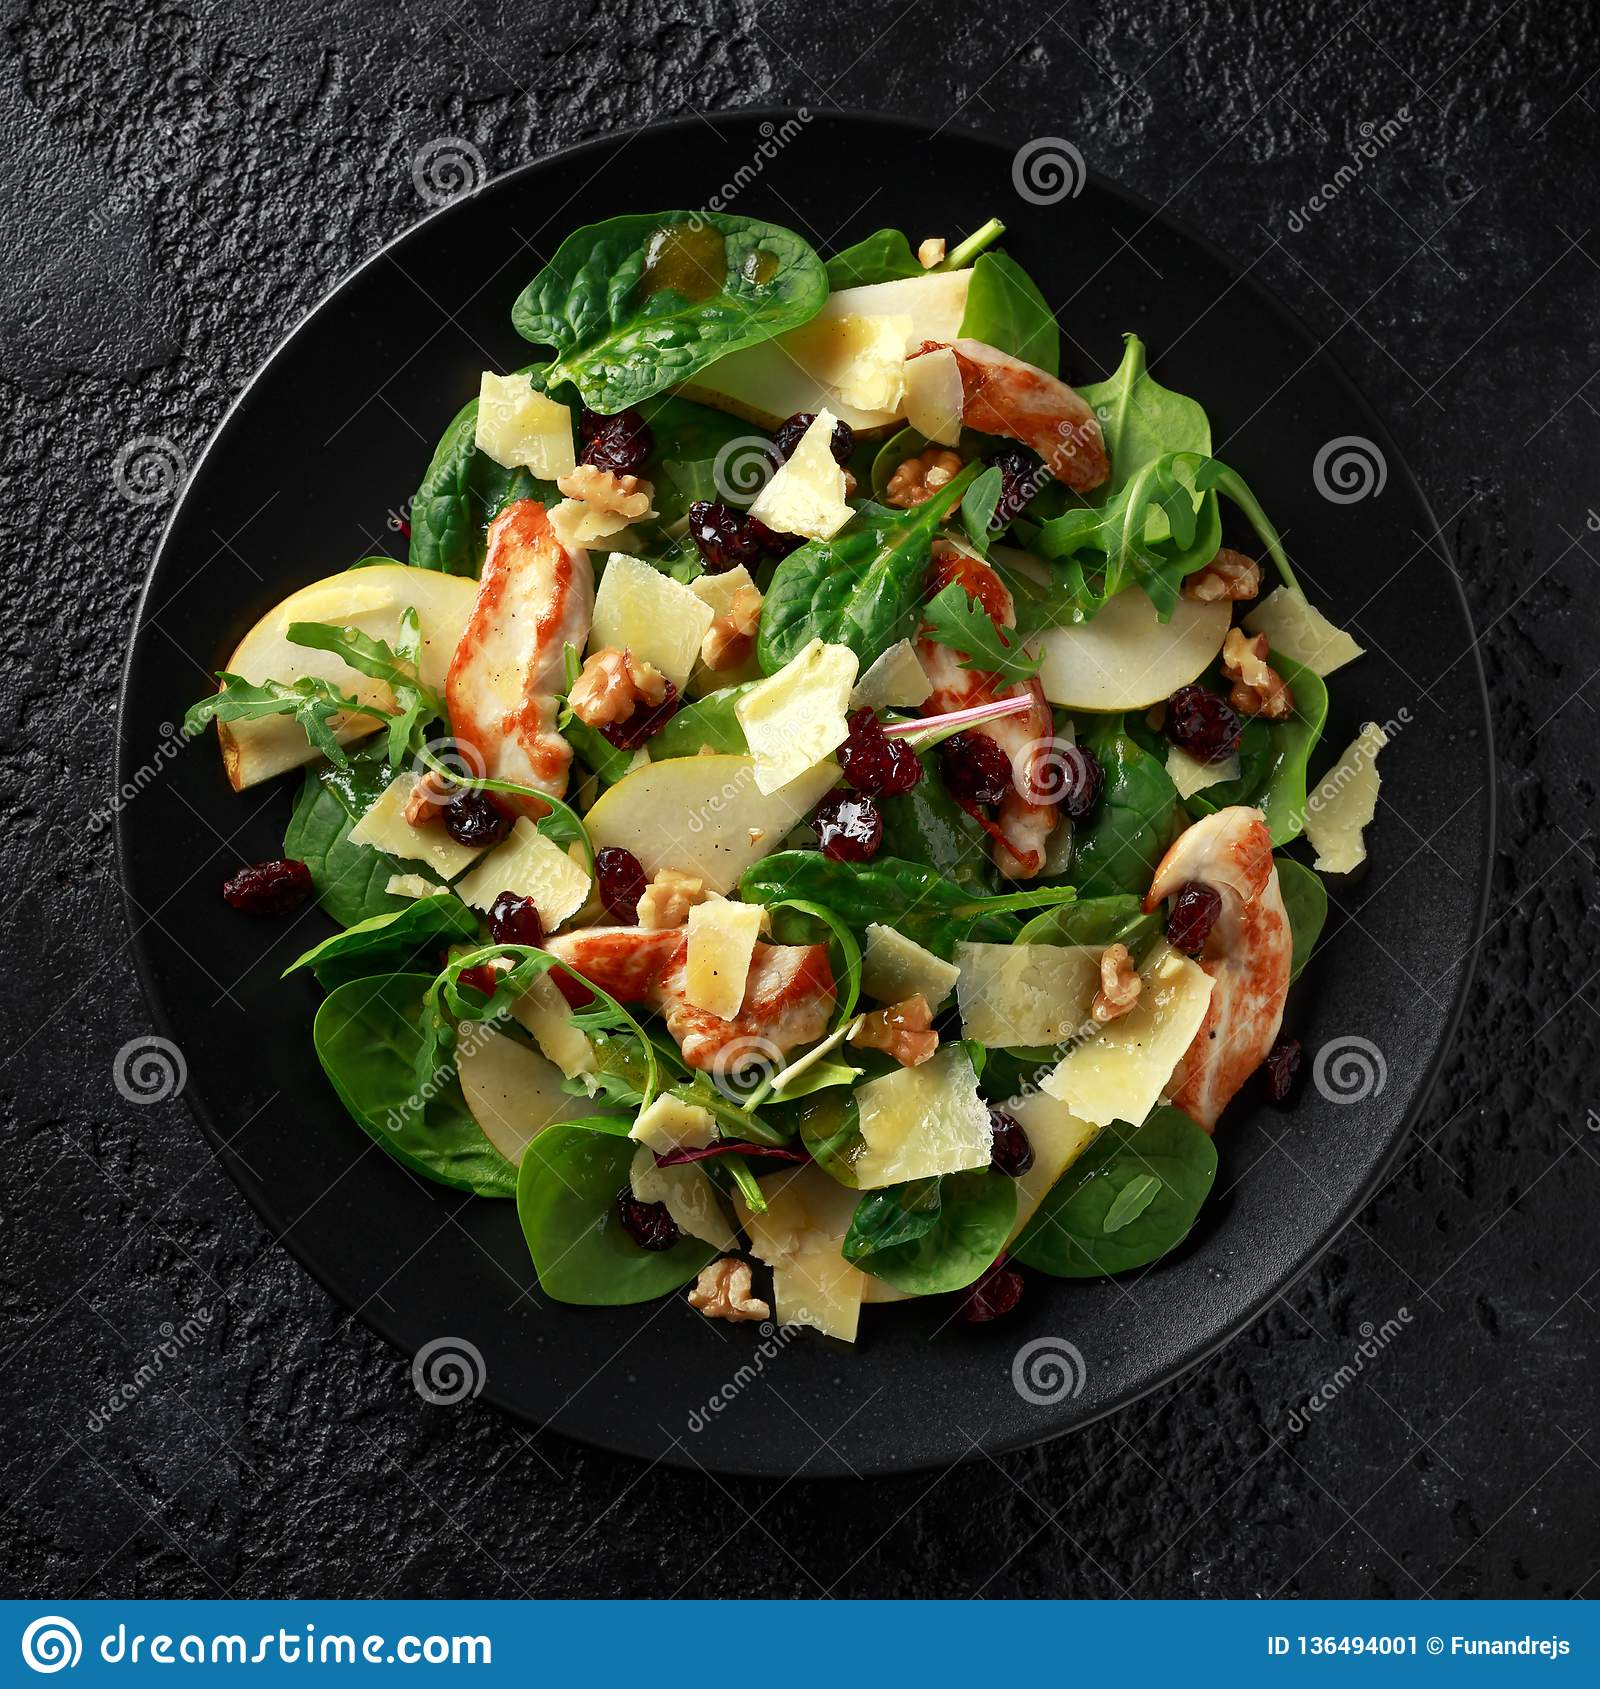 Pear, Chicken Salad With Cheddar Cheese, Cranberry And